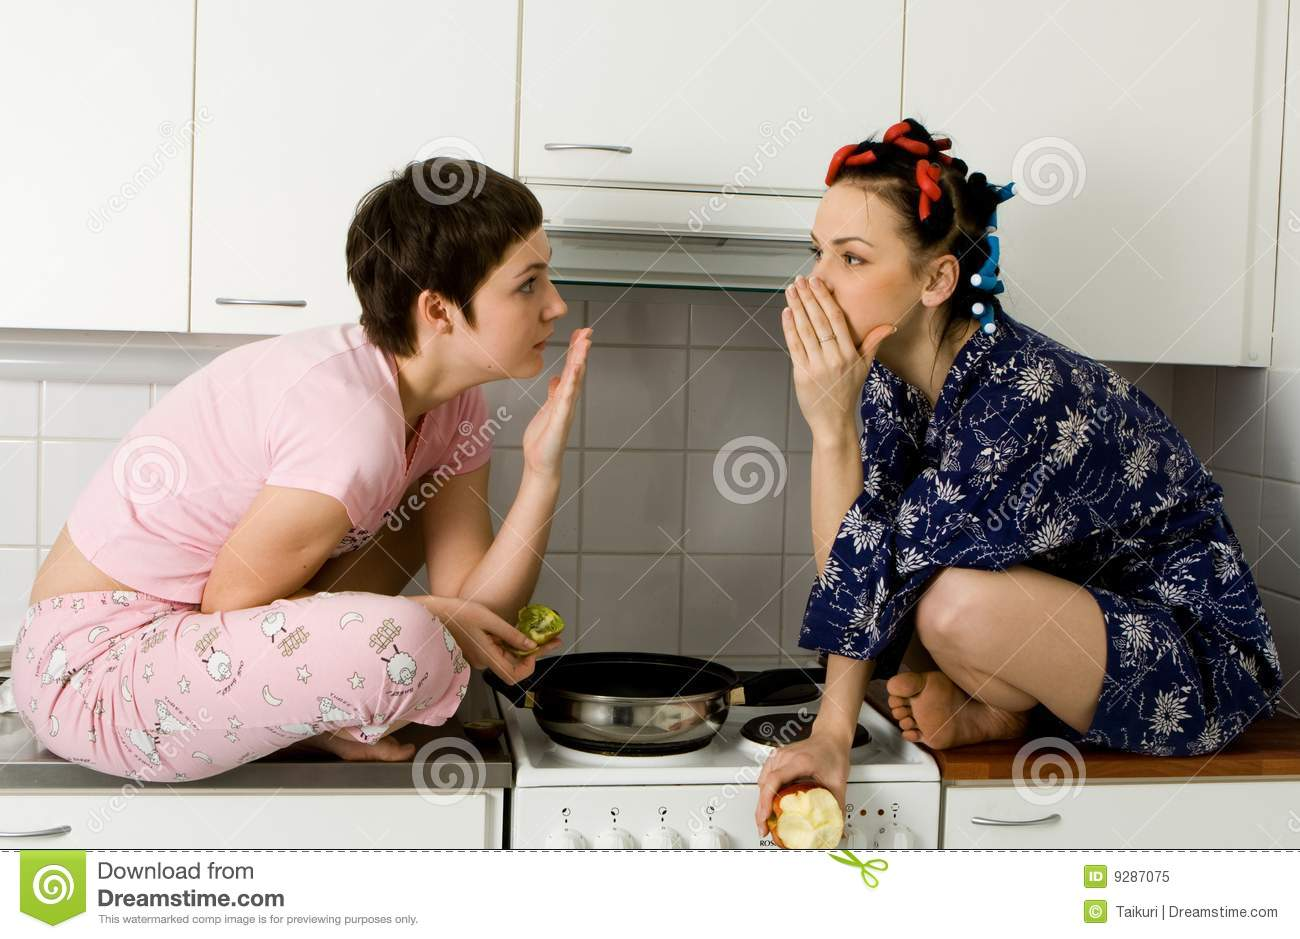 Girl Telling A Secret To Another - Gossip